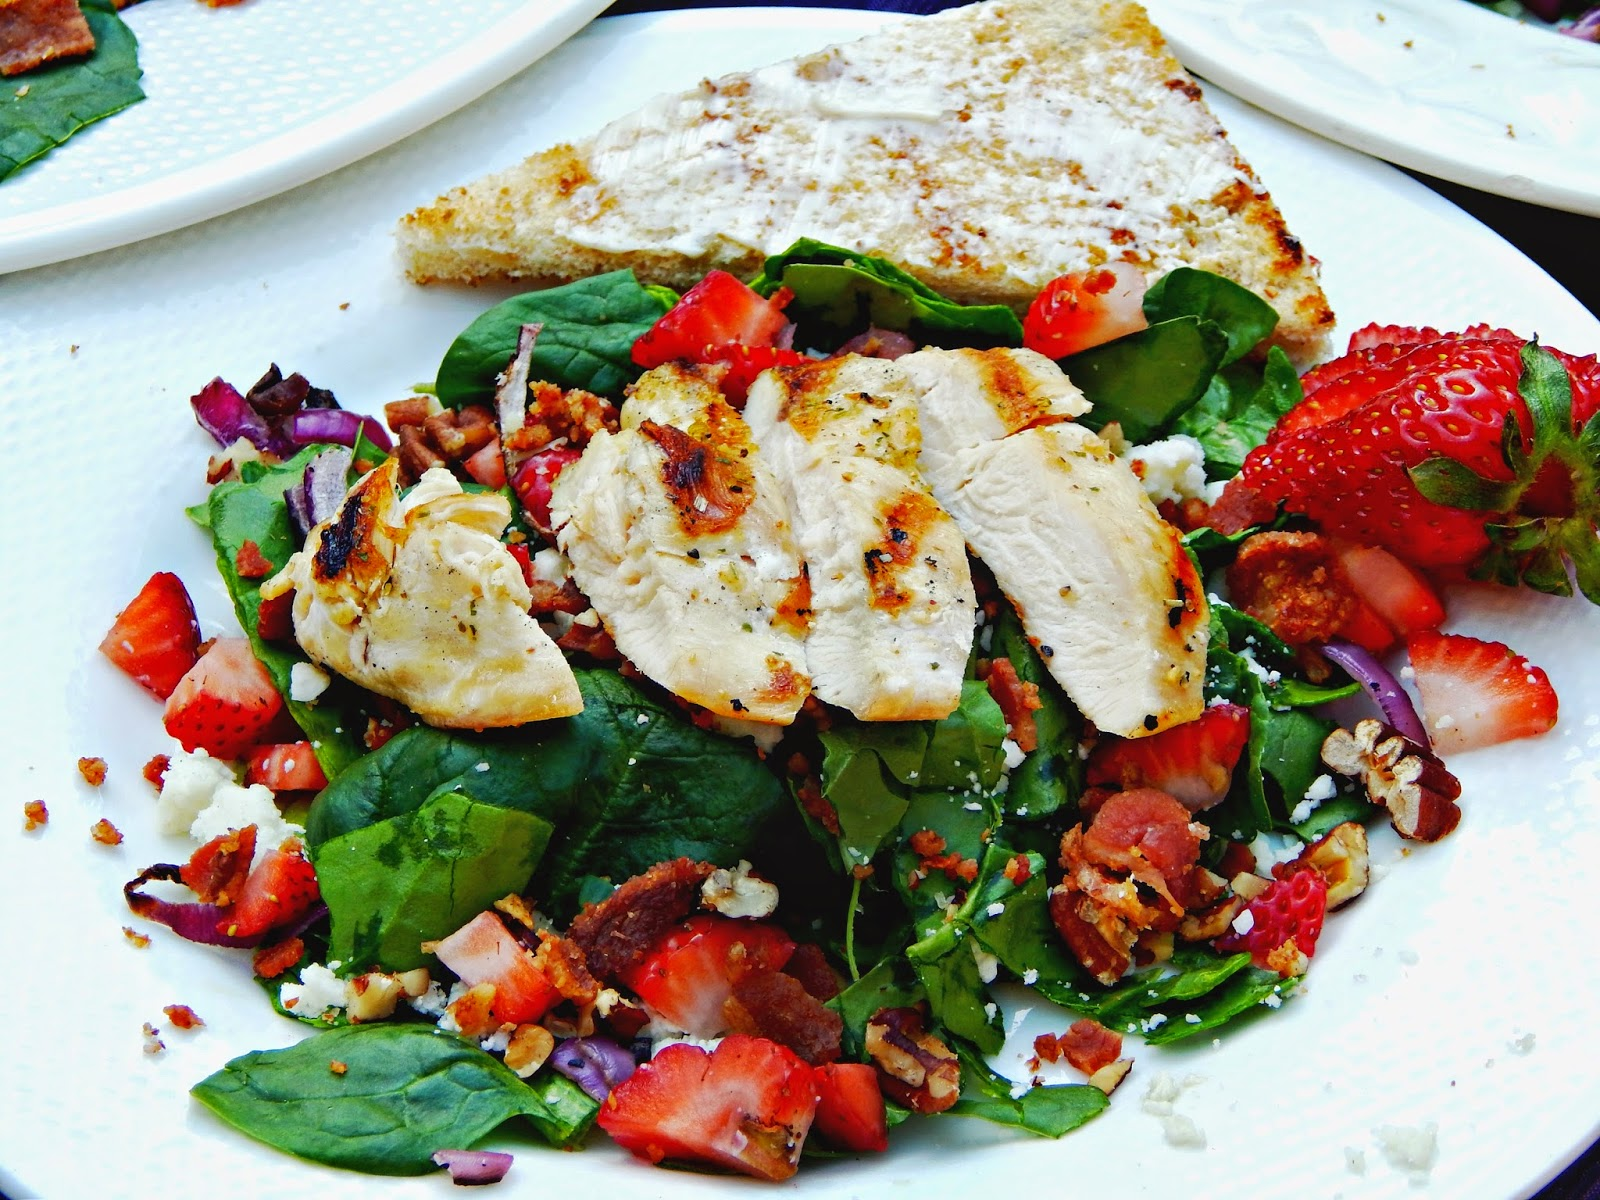 Strawberry grilled chicken salad is healthy and delicious!